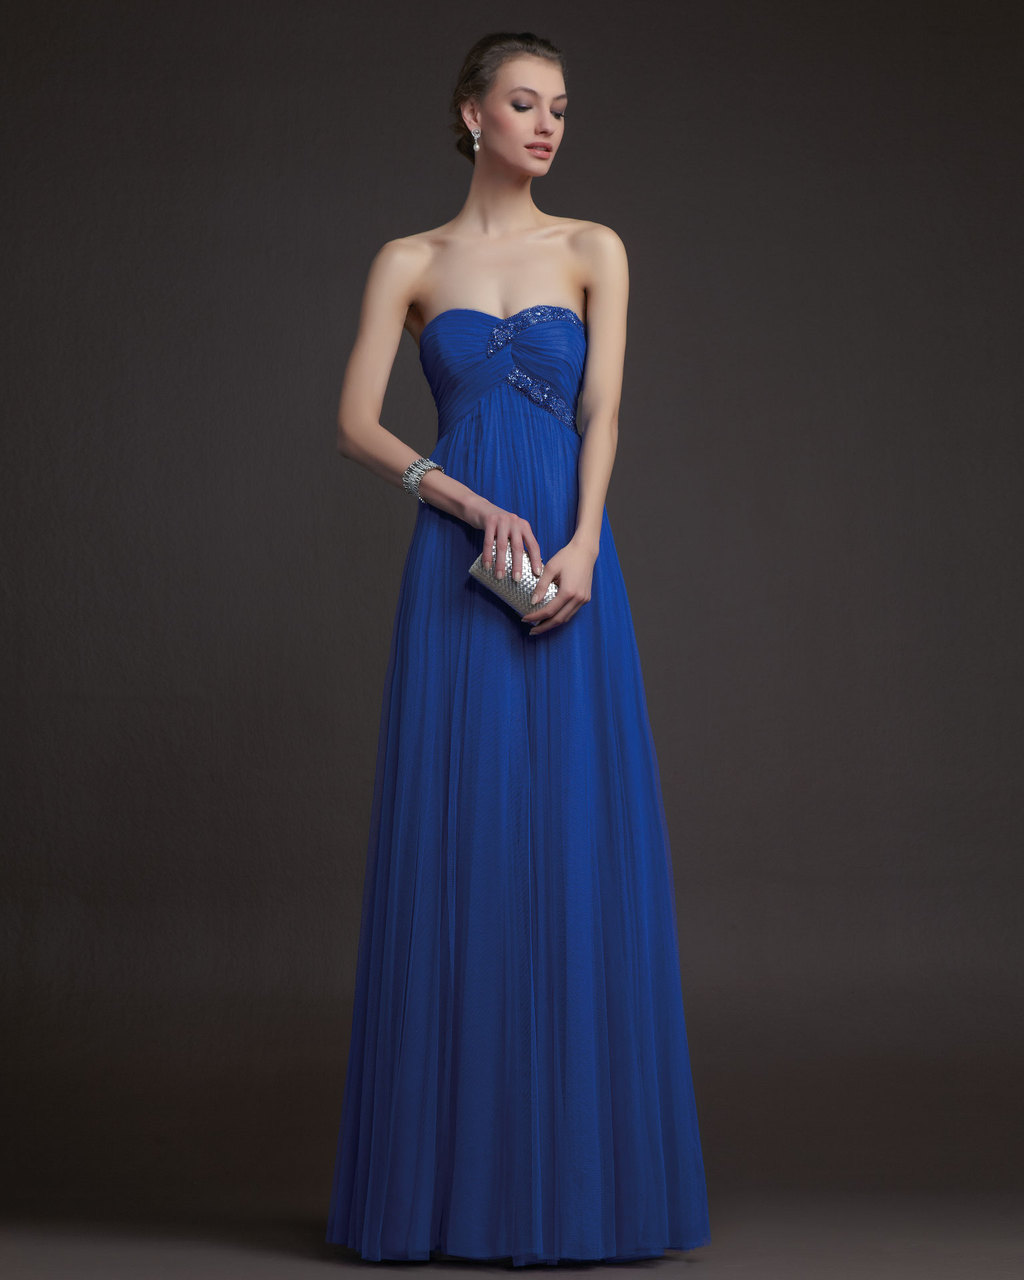 Gorgeous-2014-bridesmaid-dresses-from-aire-barcelona-cobalt-blue-sweetheart.full